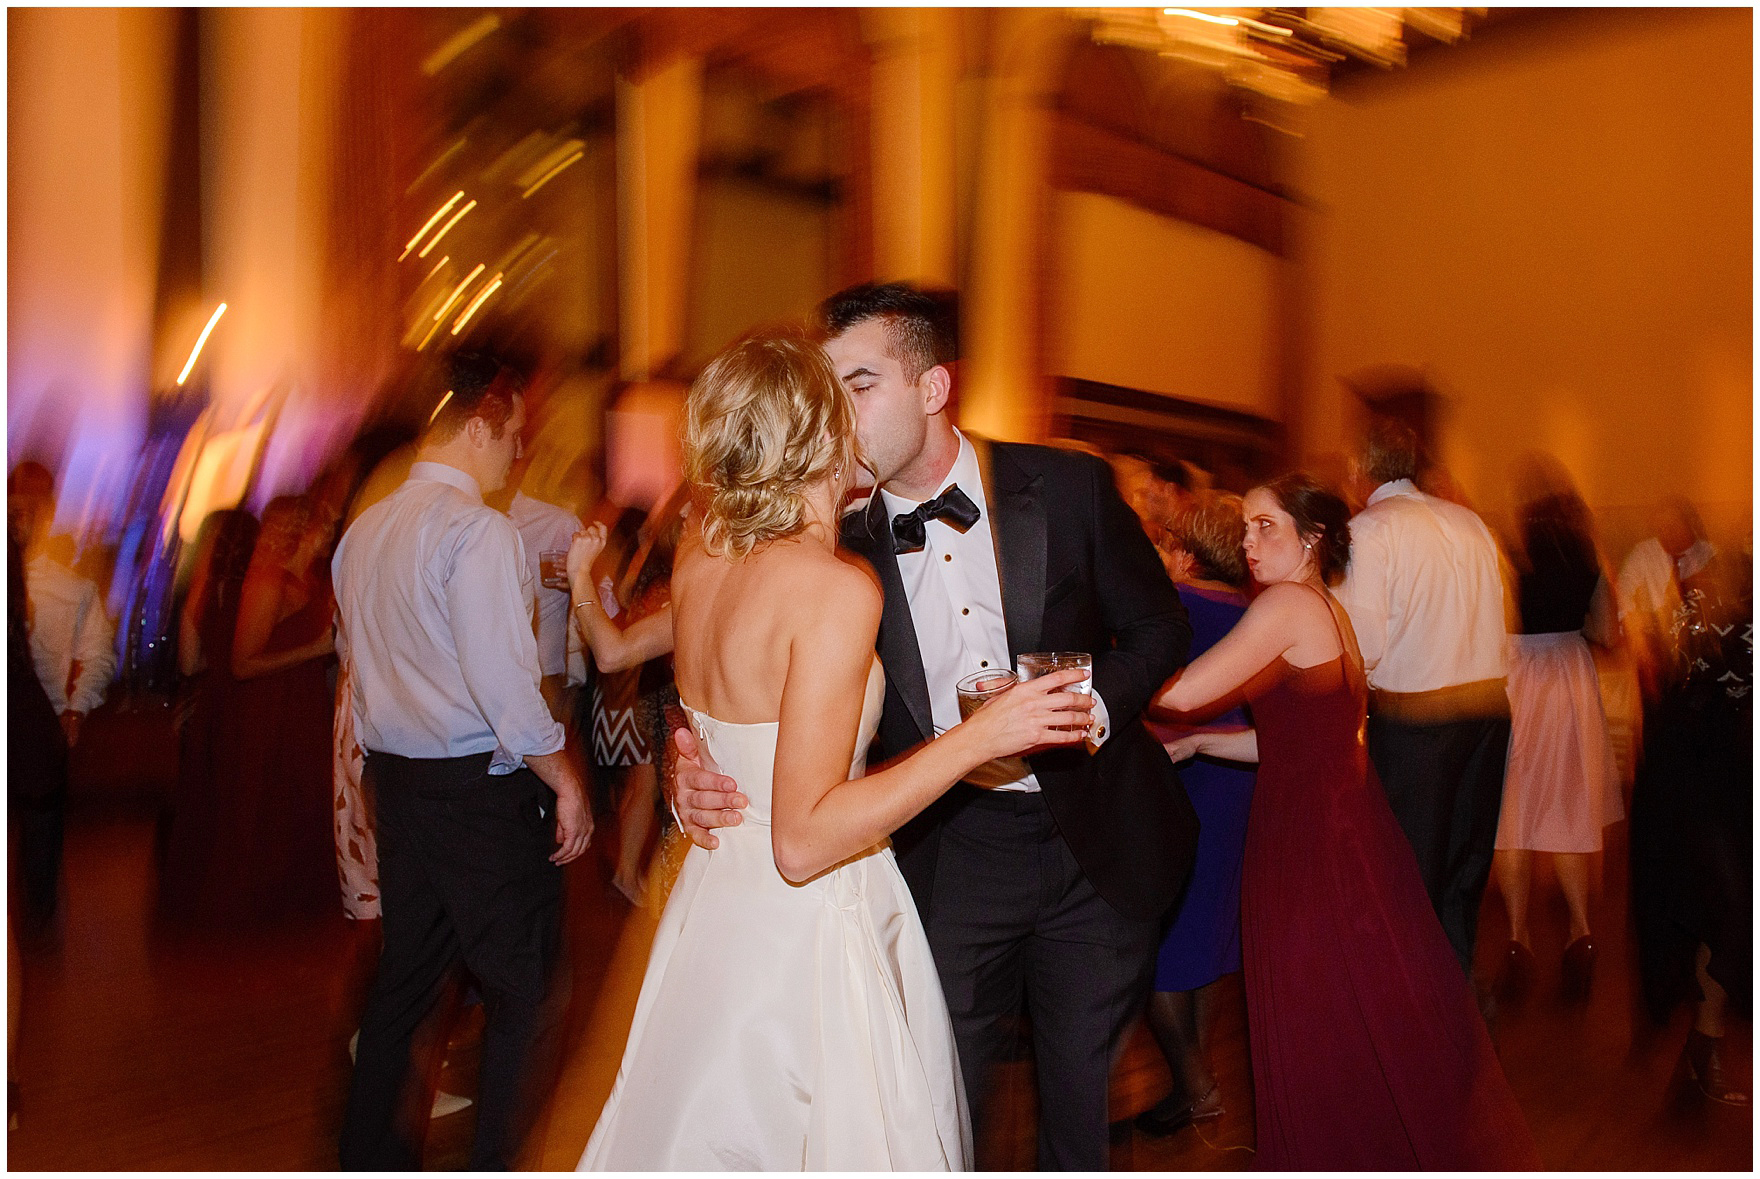 The bride and groom kiss on the dance floor during a St. Clement Germania Place Chicago wedding.